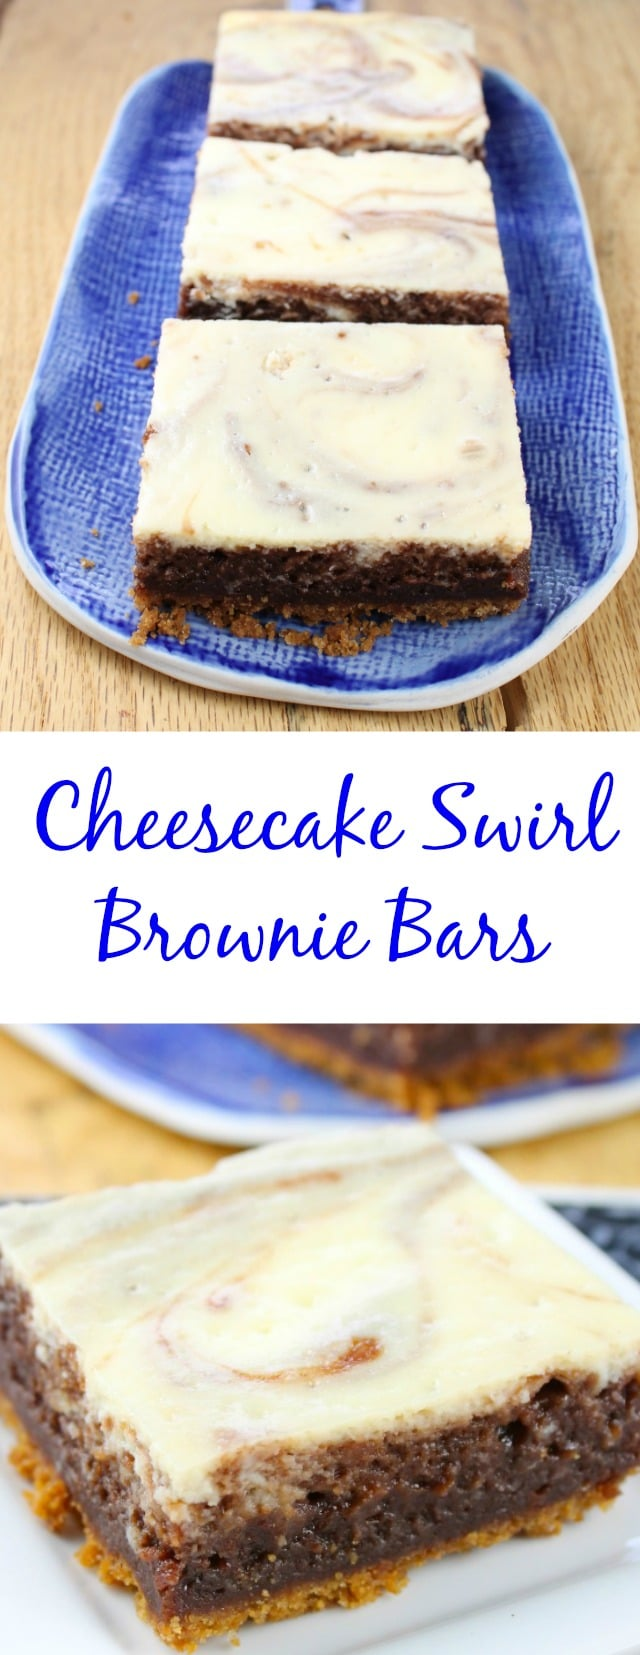 Cheesecake Swirl Brownie Bars from Dessert Mash-Ups ~ Miss in the Kitchen